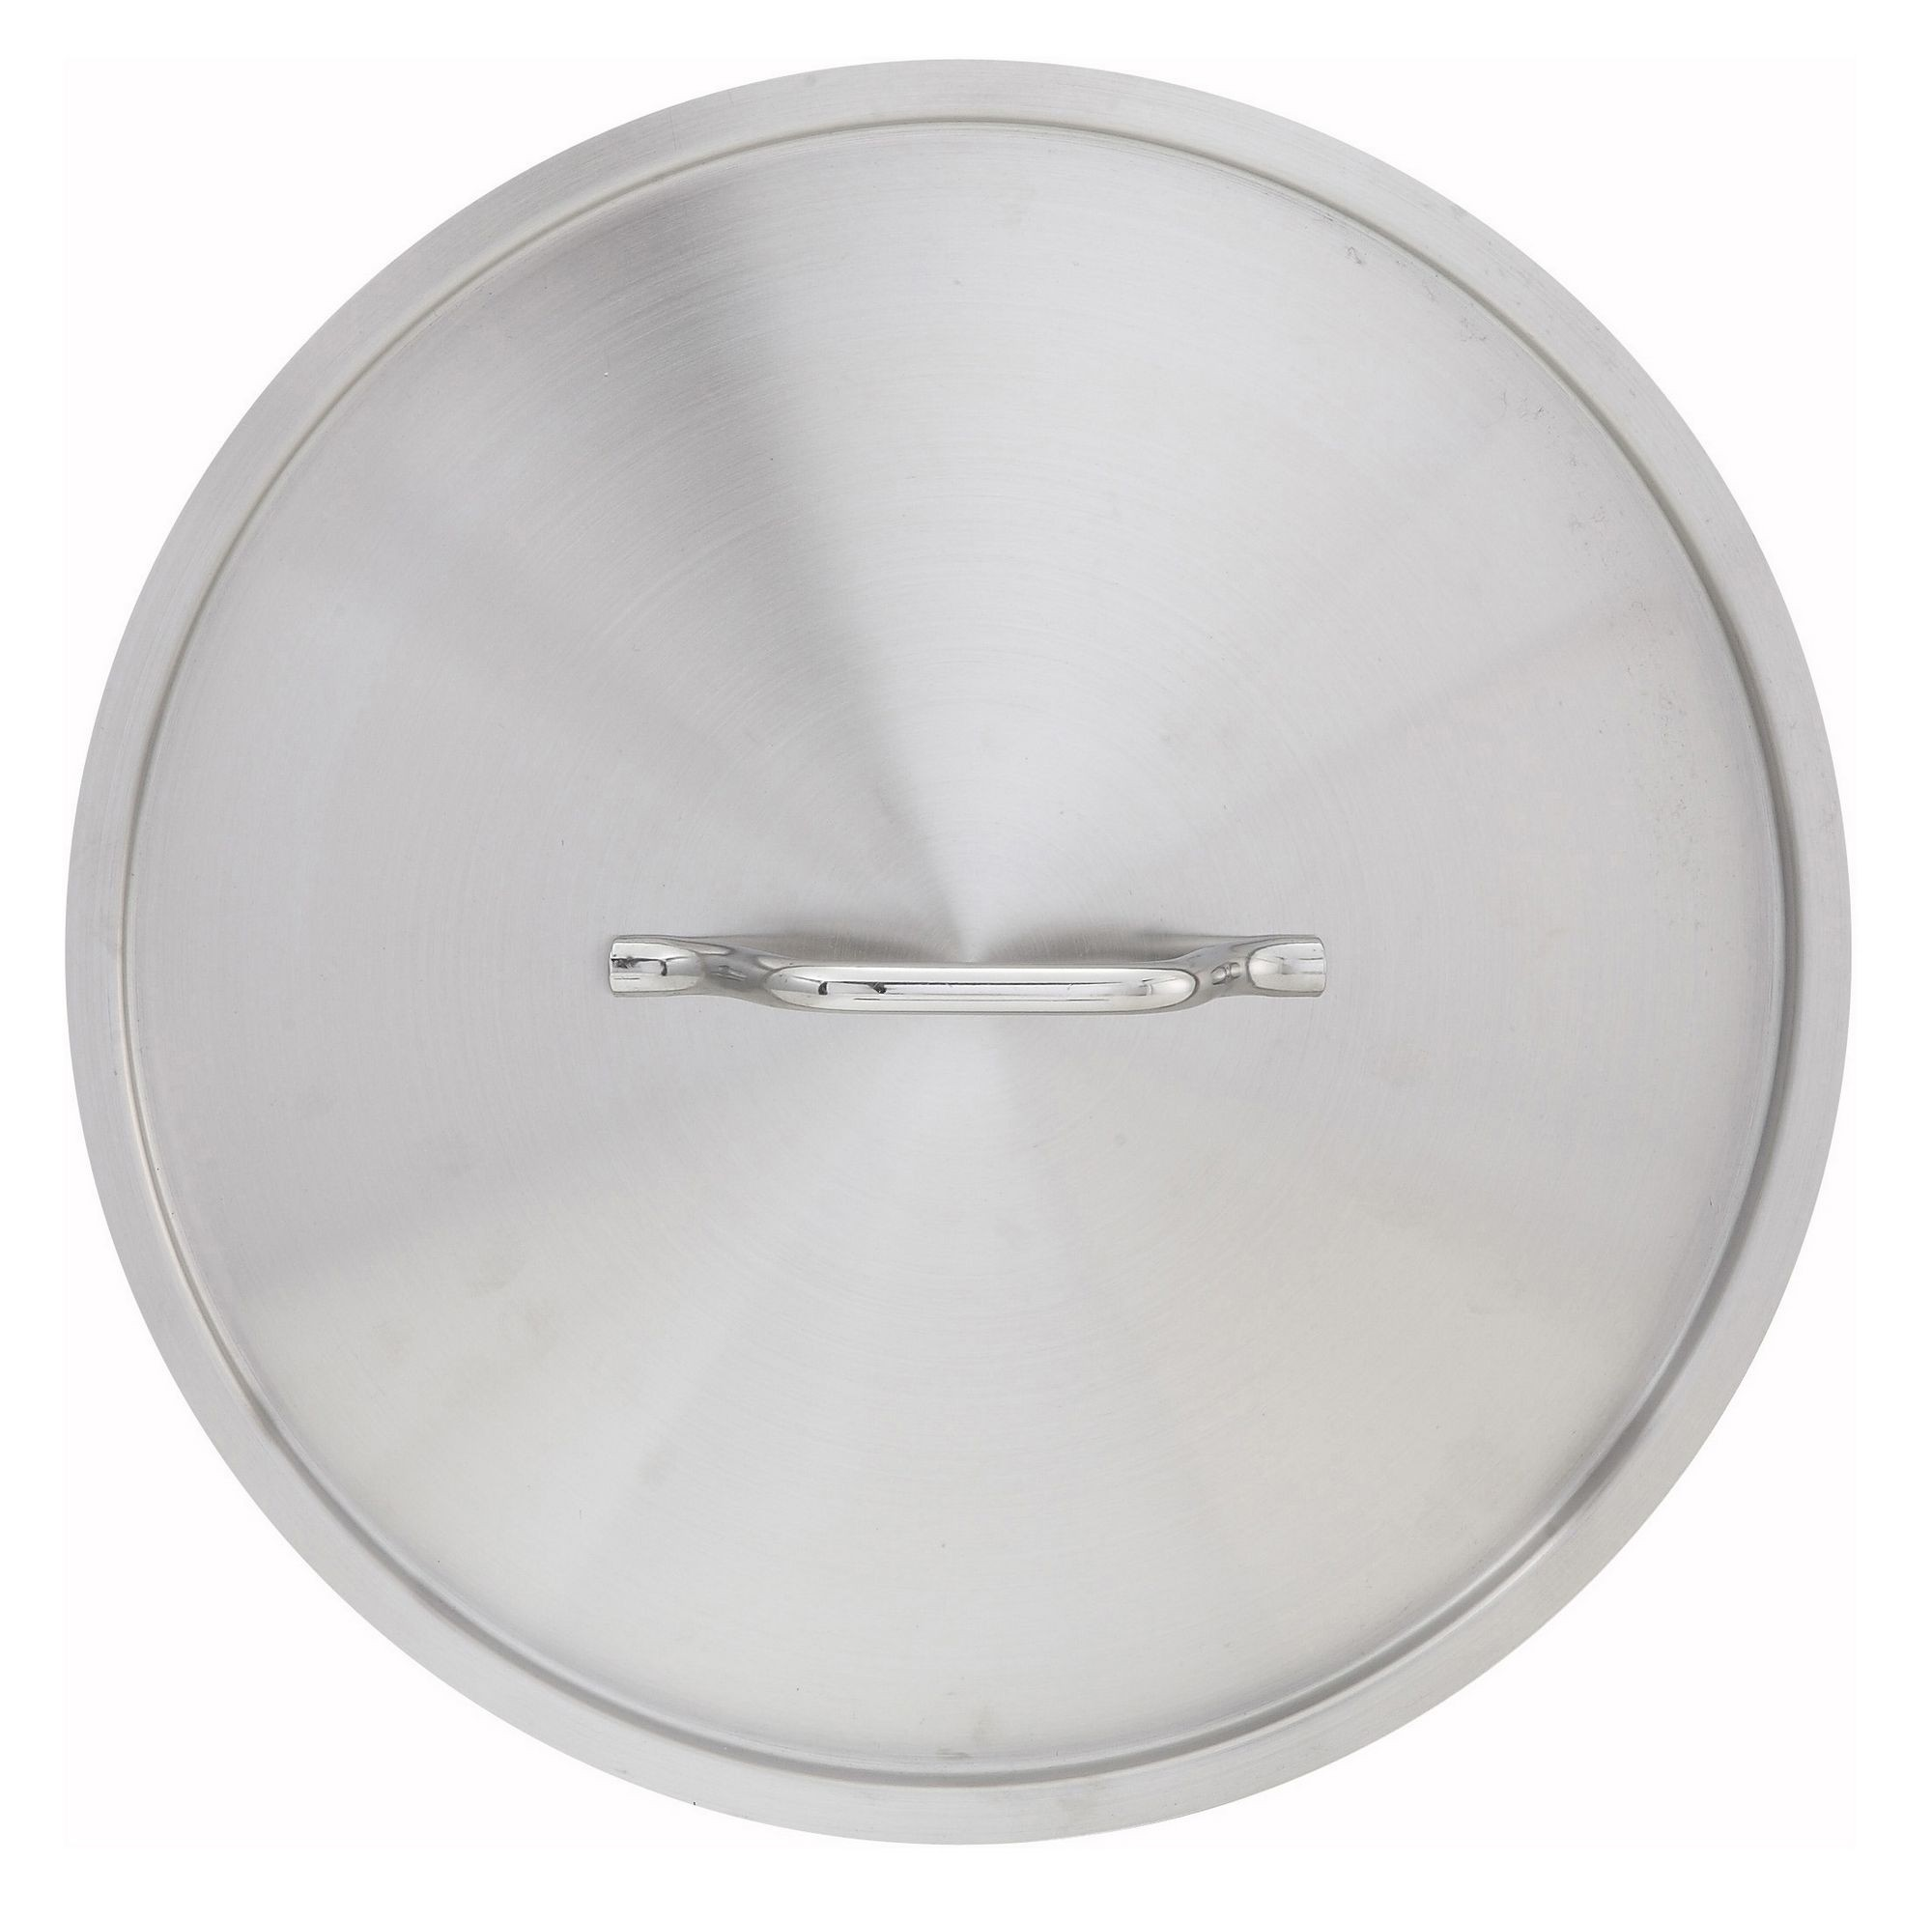 Winco sstc-2 Stainless Steel Cover for 2 Qt. Sauce Pan SSSP-2